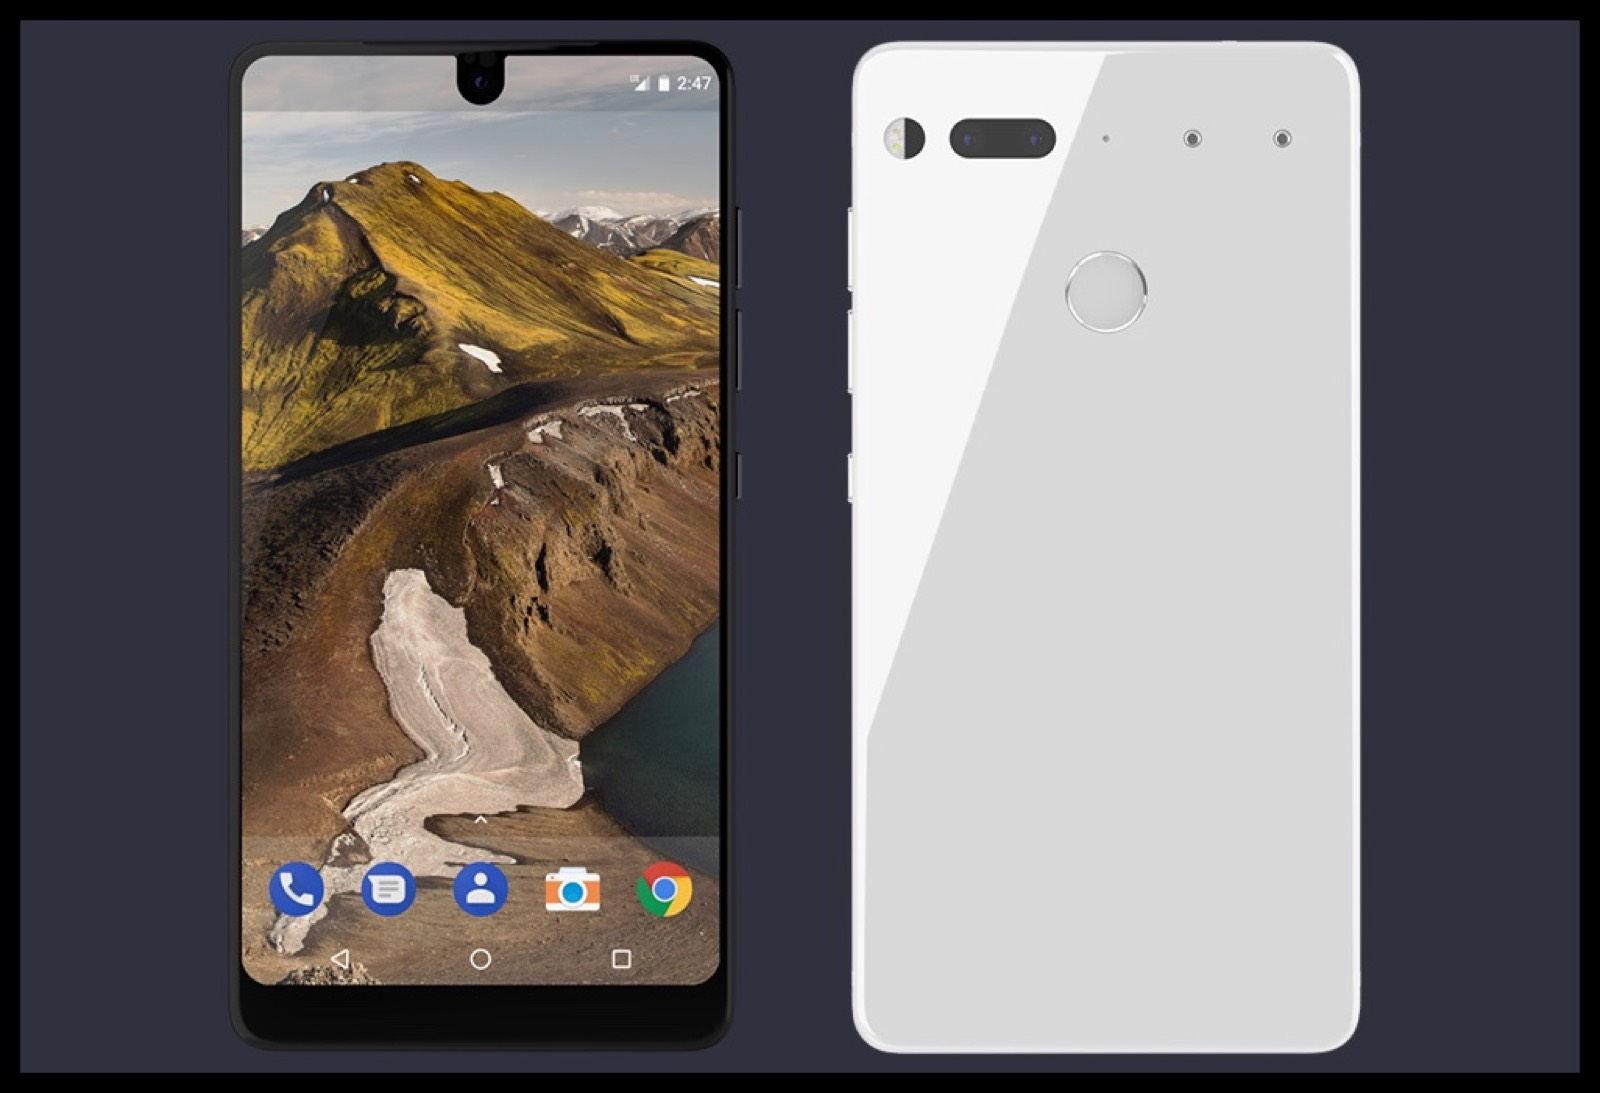 Image of the new Essential Android phone, which has a black notch like the latest iPhone 8 mockup.